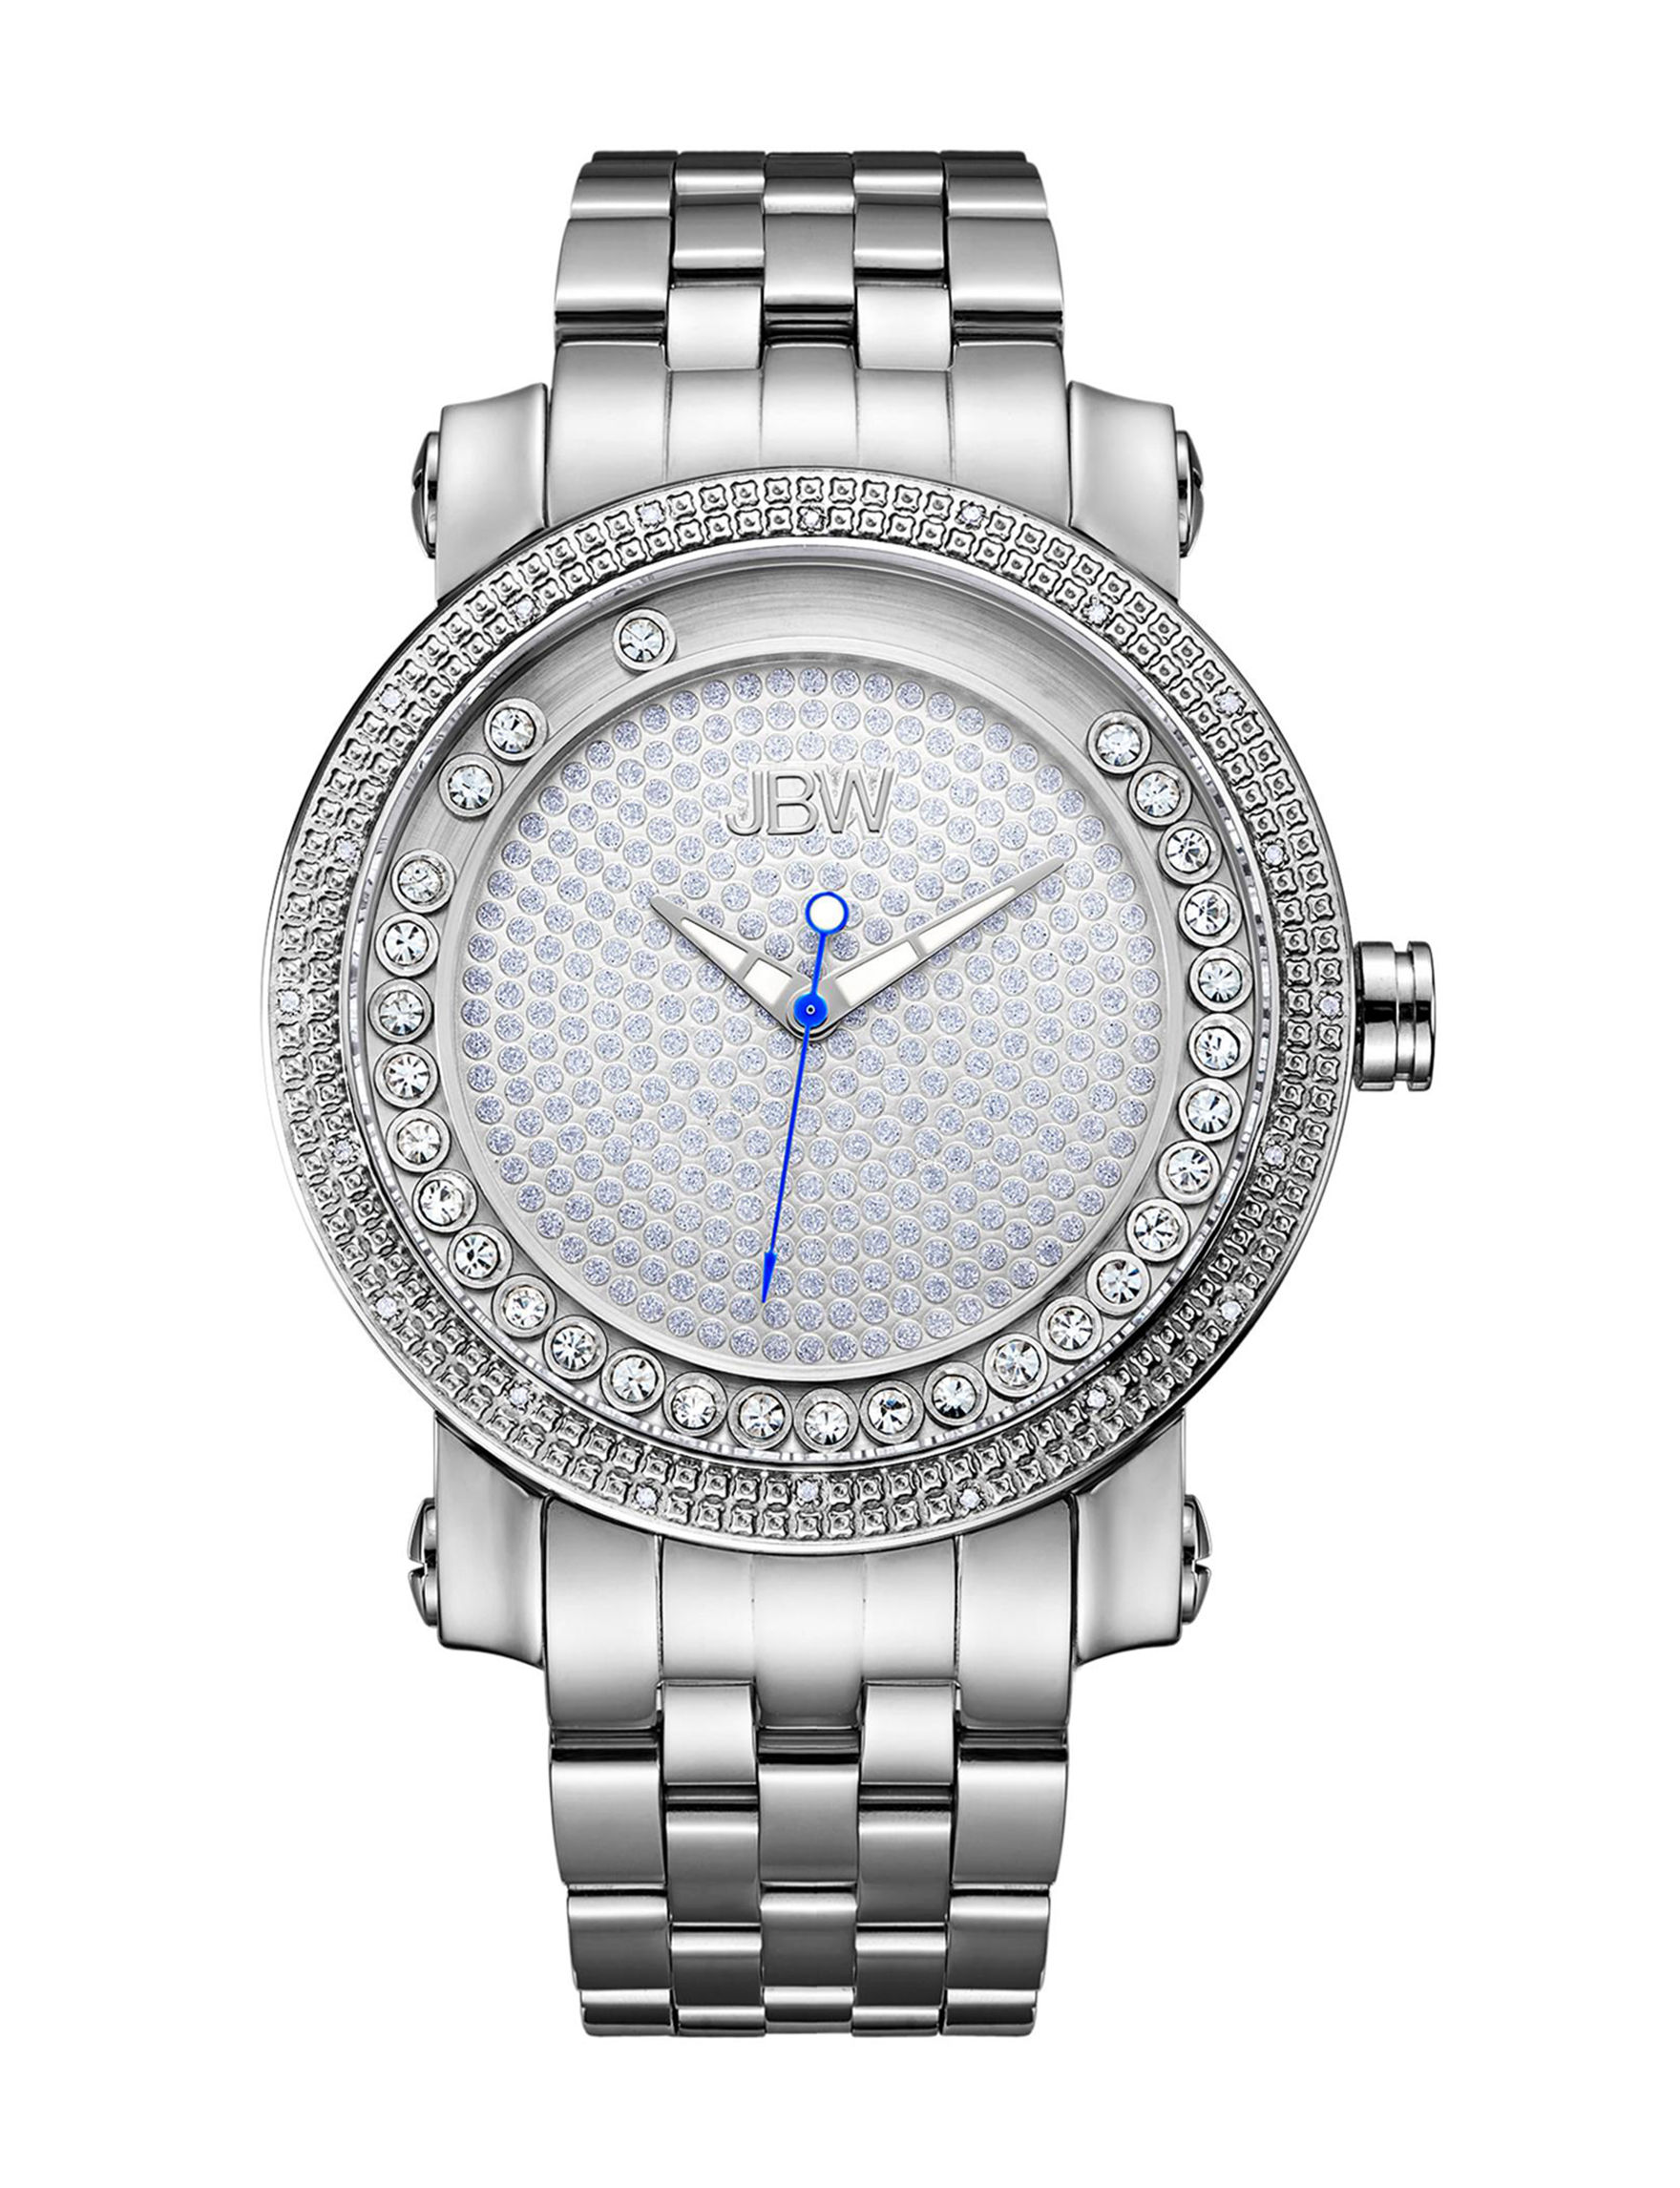 JBW Silver Fashion Watches